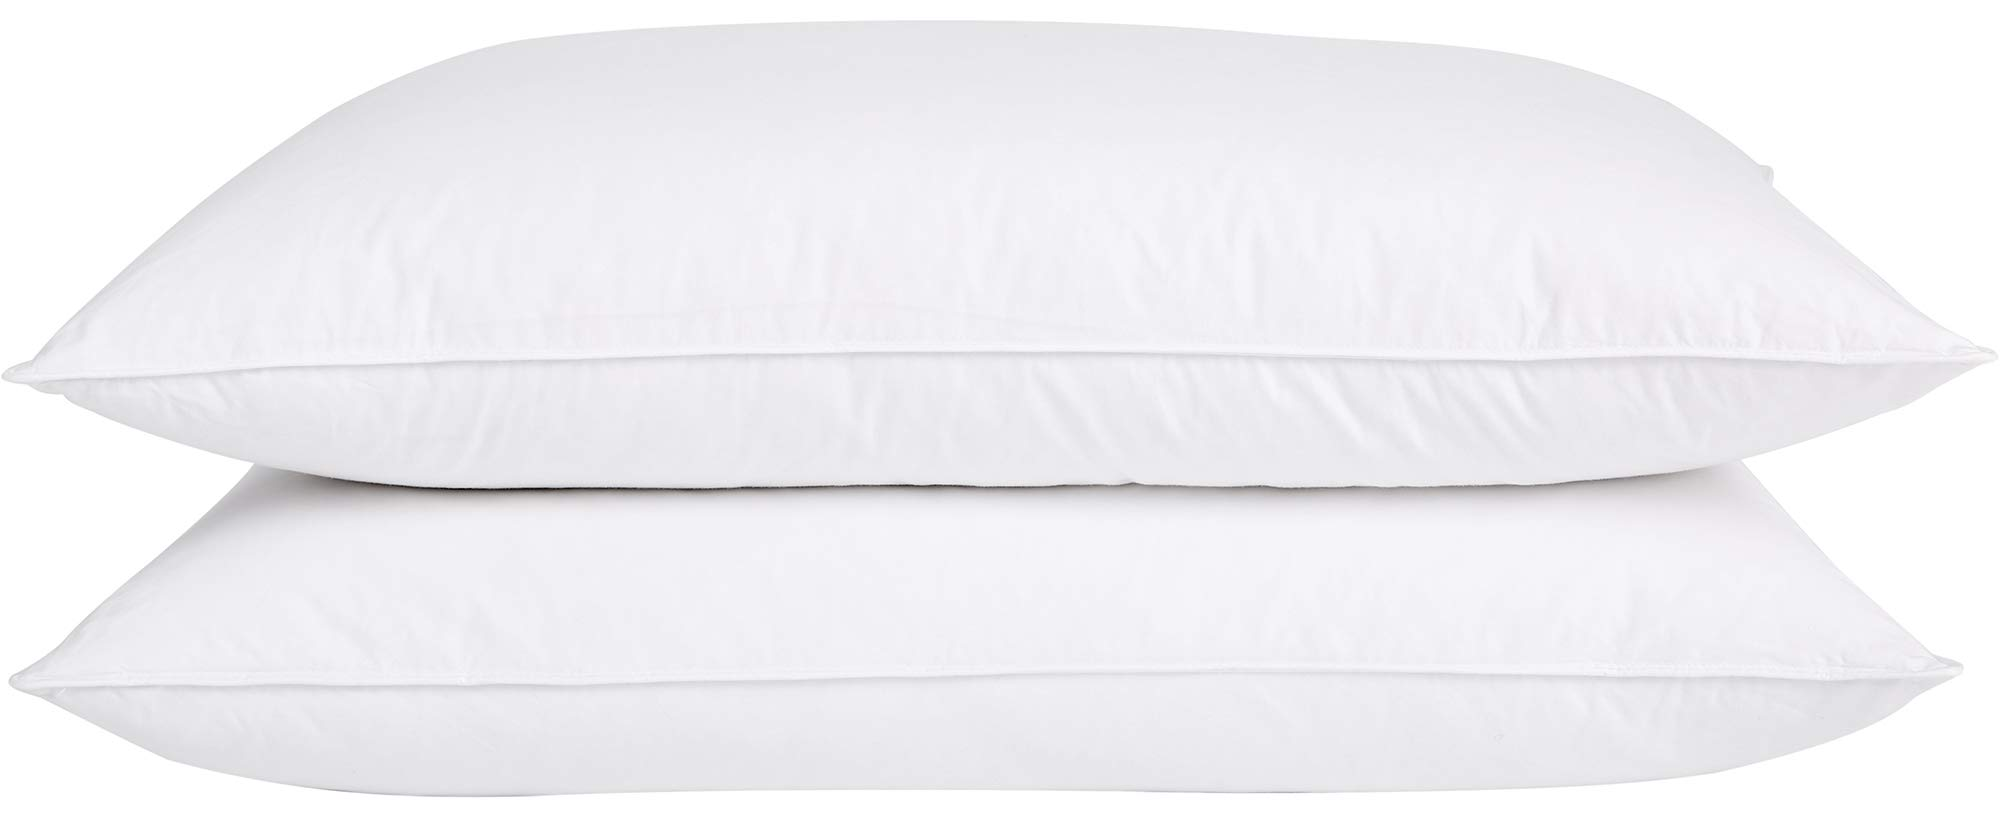 puredown Natural Goose Down Pillows 100% Cotton Pillow Cover Set of 2 Bed Pillows for Sleeping King Size